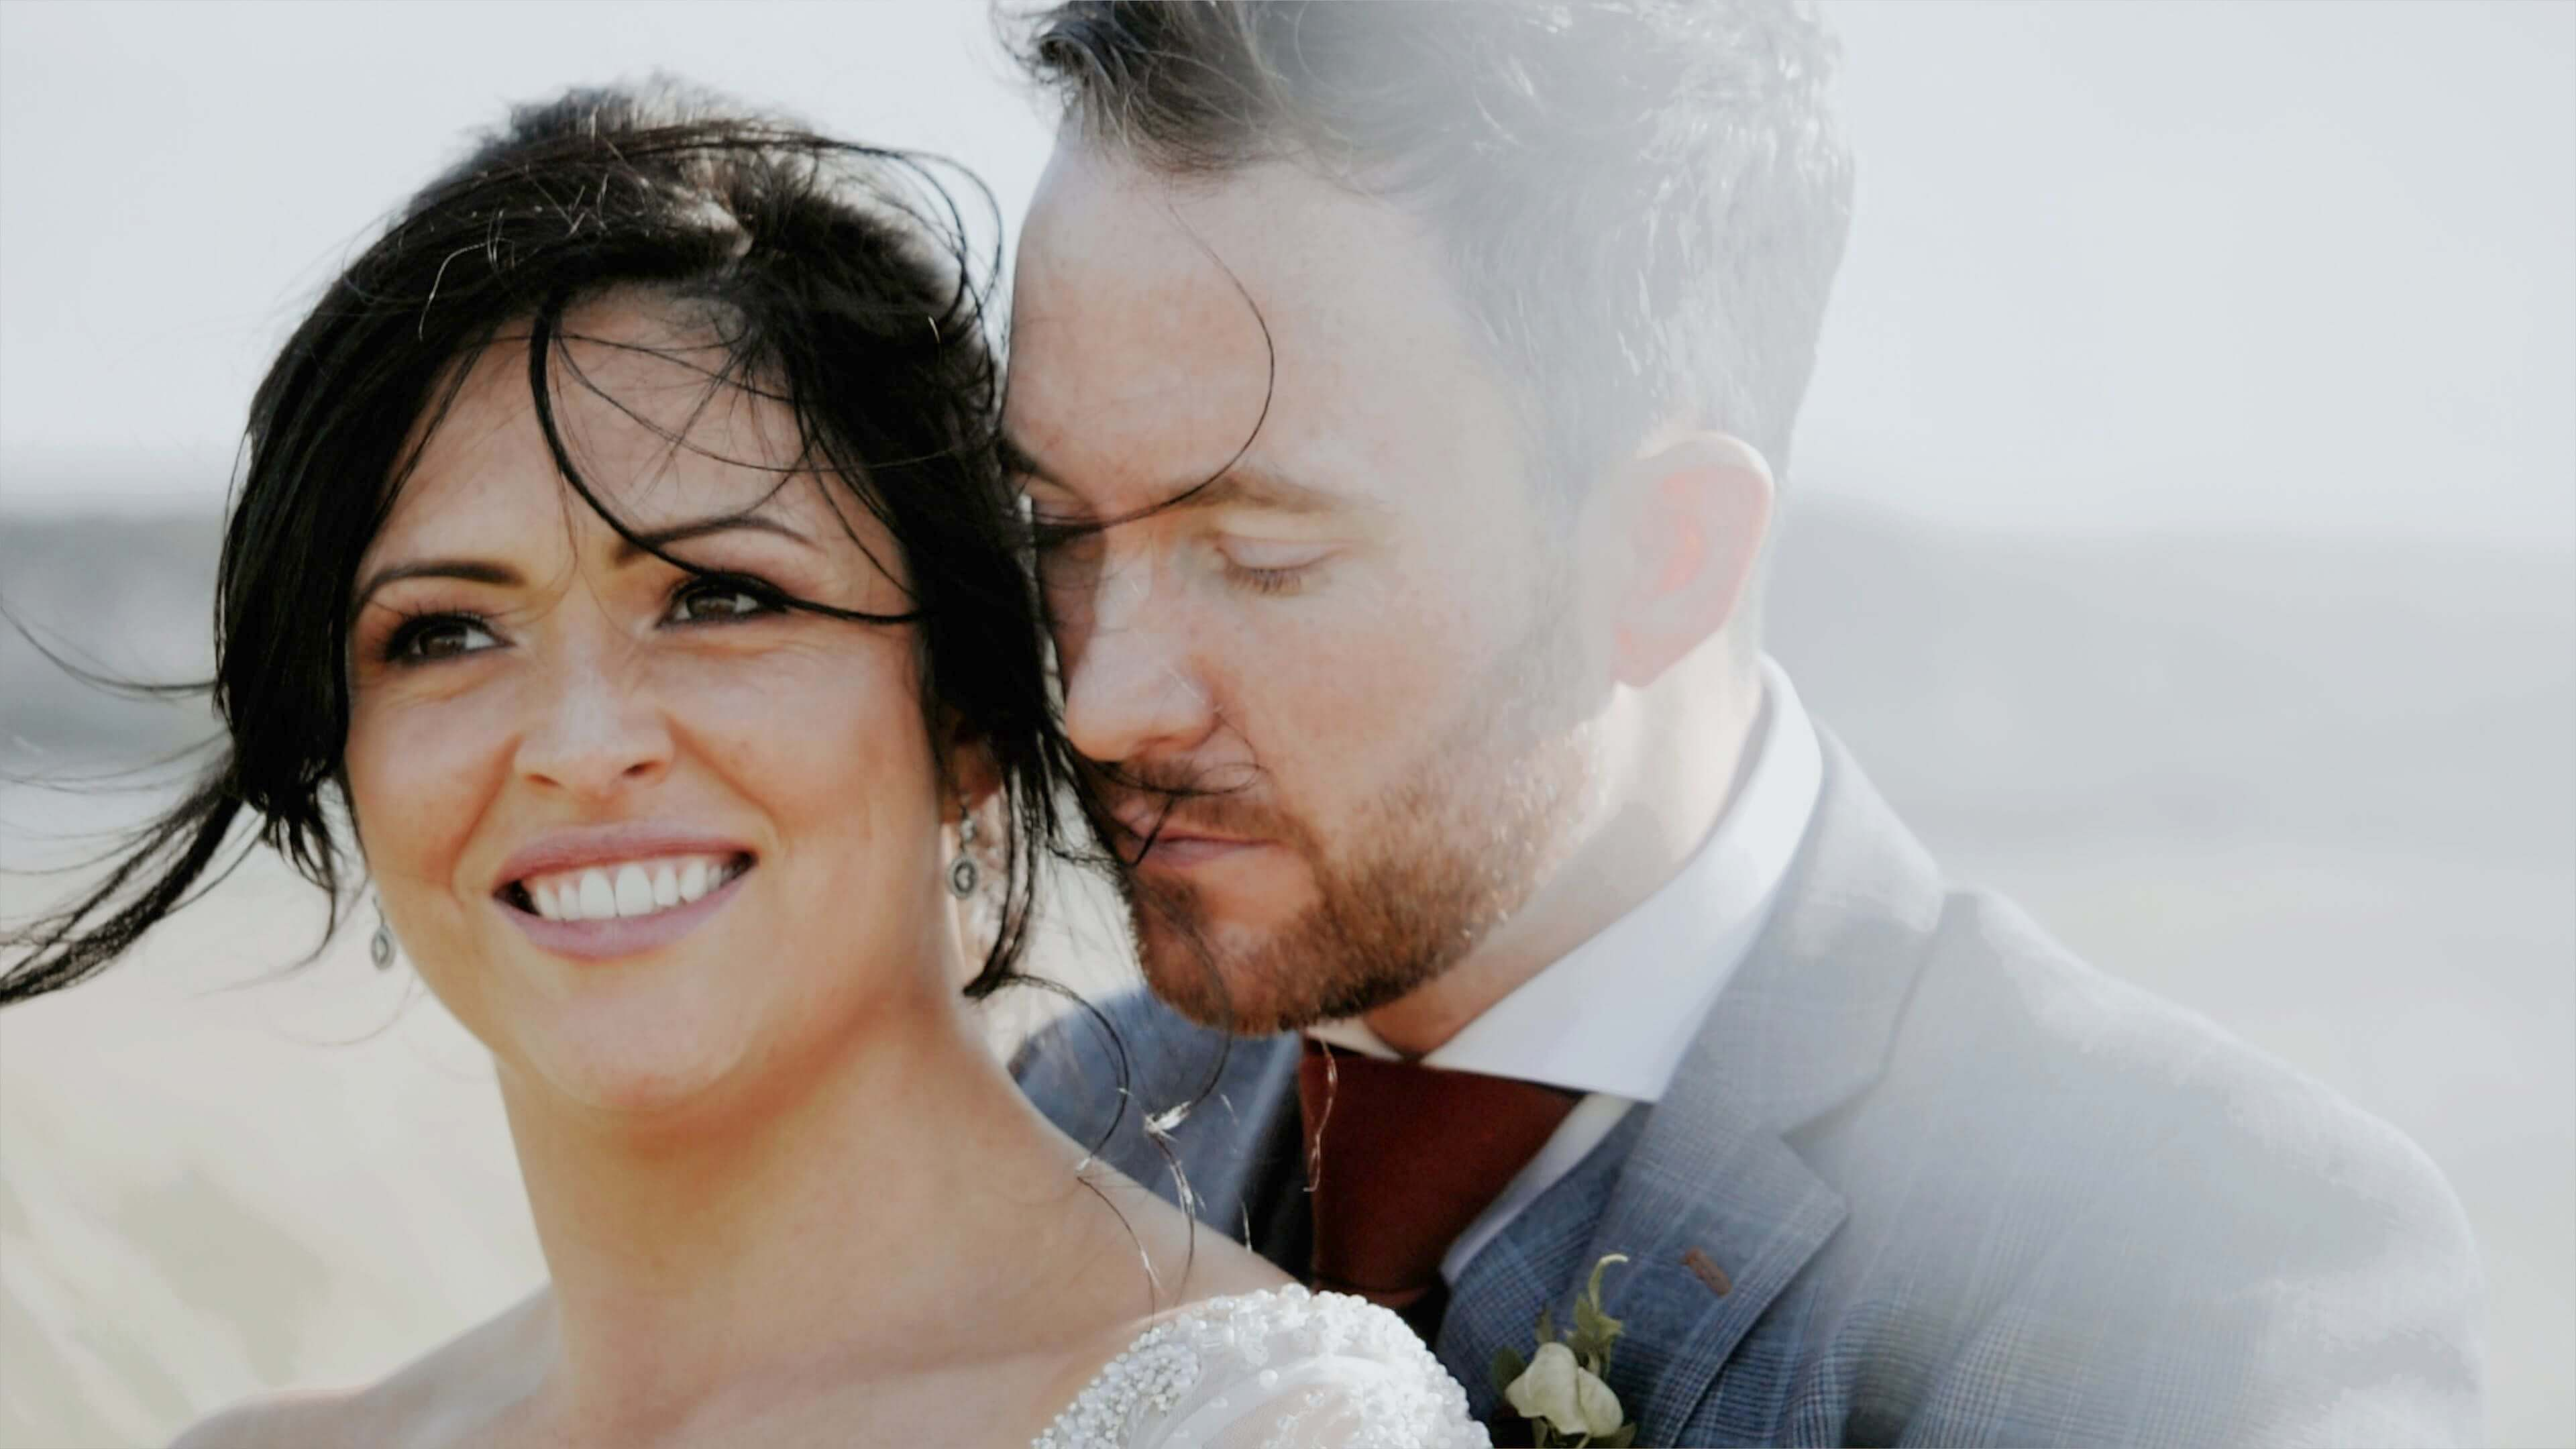 Ellen & Niall, Wedding Video at Garryvoe Hotel